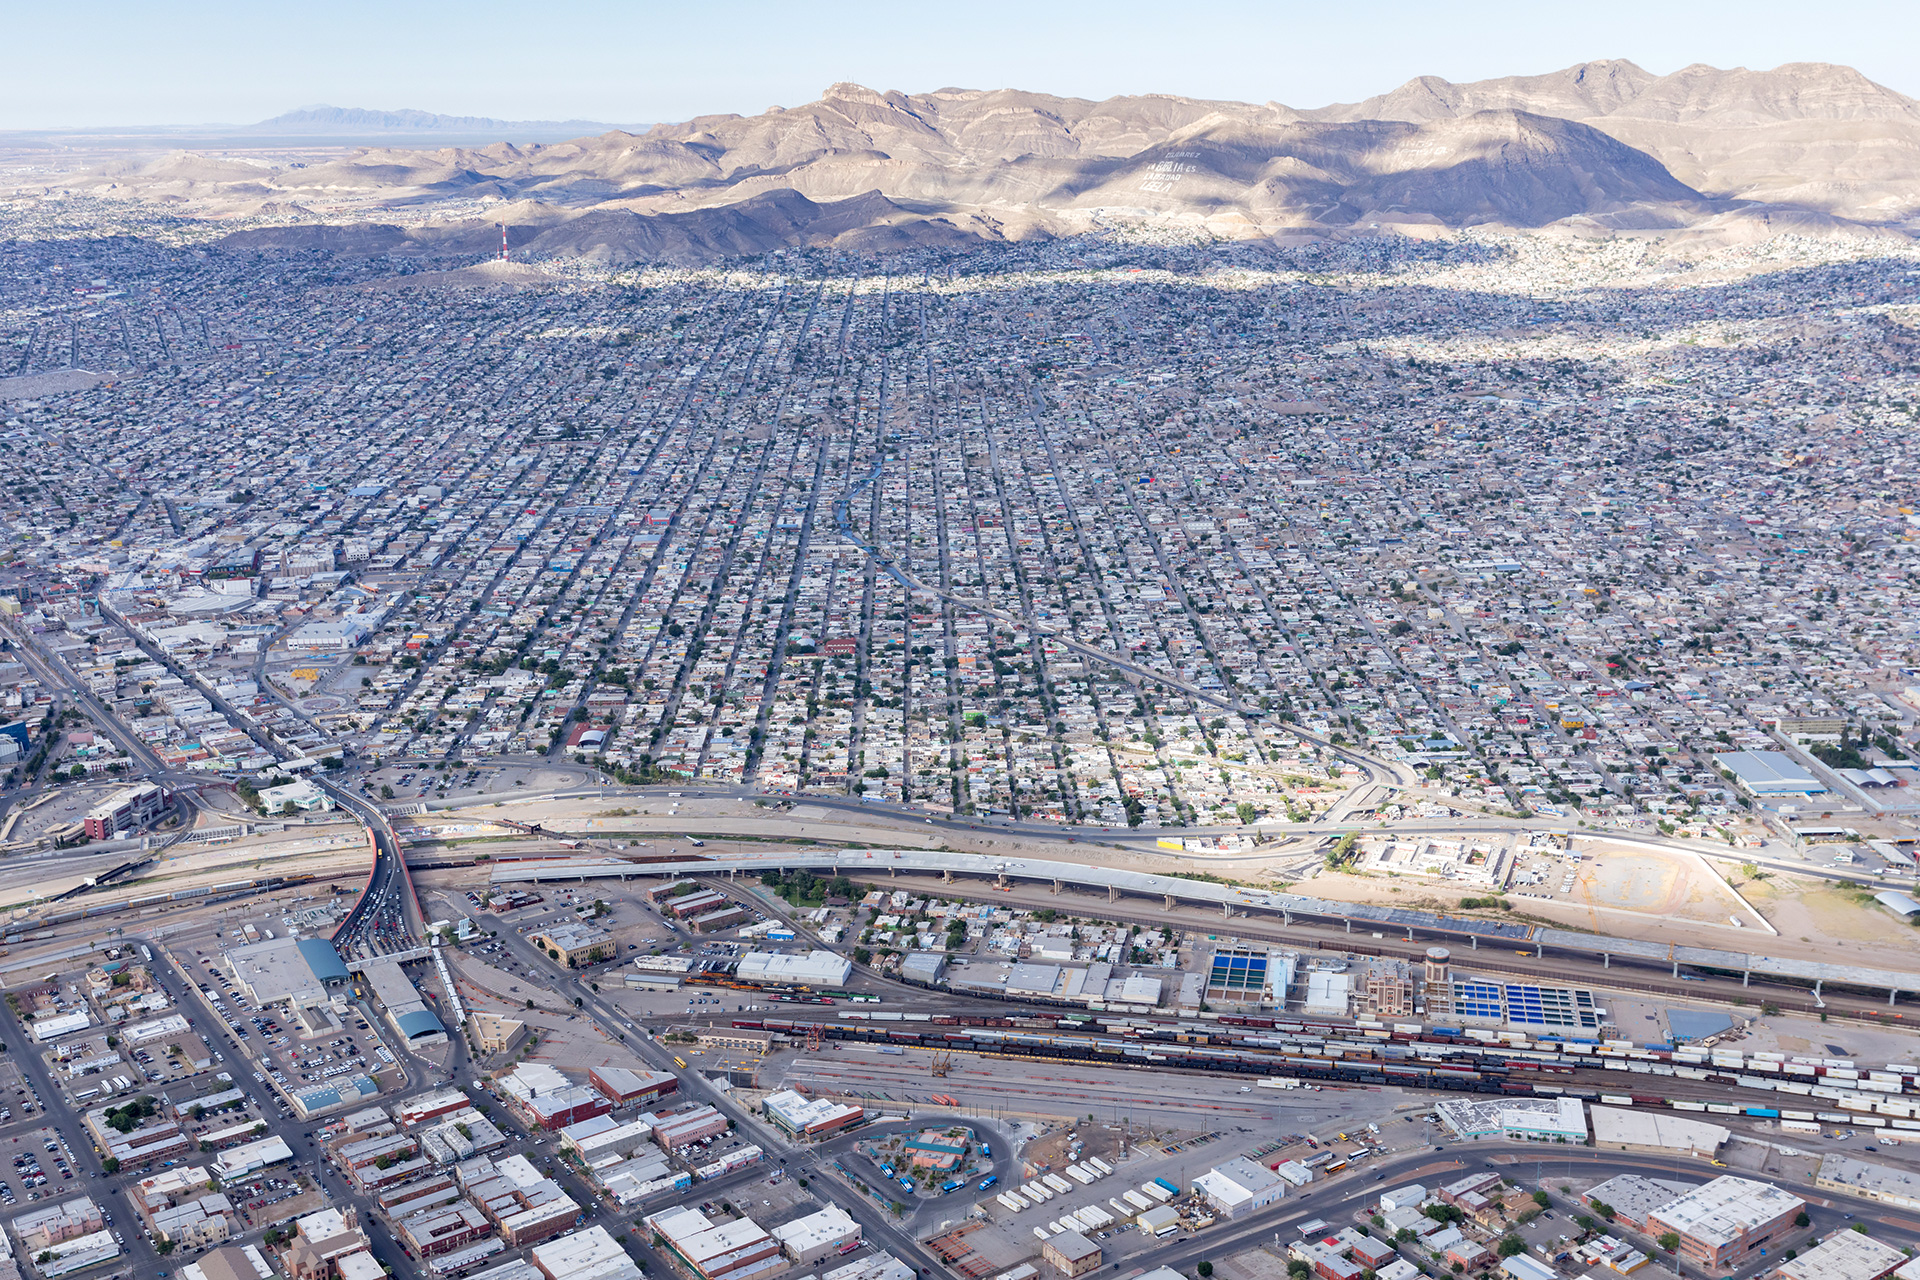 A view across the border from El Paso, USA towards Ciudad Juarez, Mexico| Two Sides of the Border| Tatiana Bilbao, Nile Greenberg| STIR